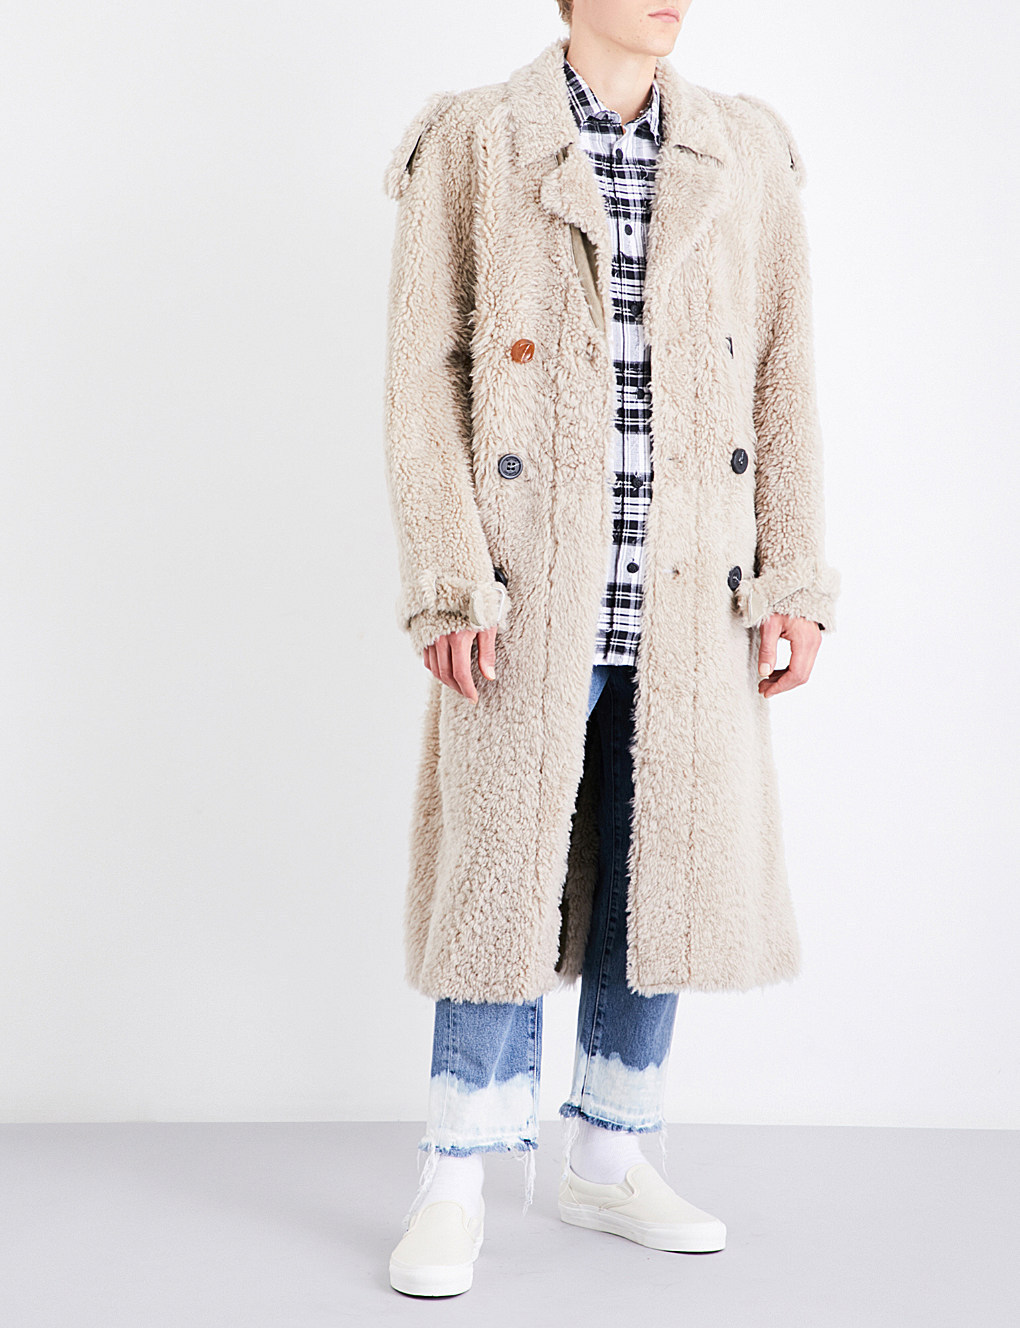 17AW [OFF-WHITE] ムートン ロング トレンチコート 国内発送